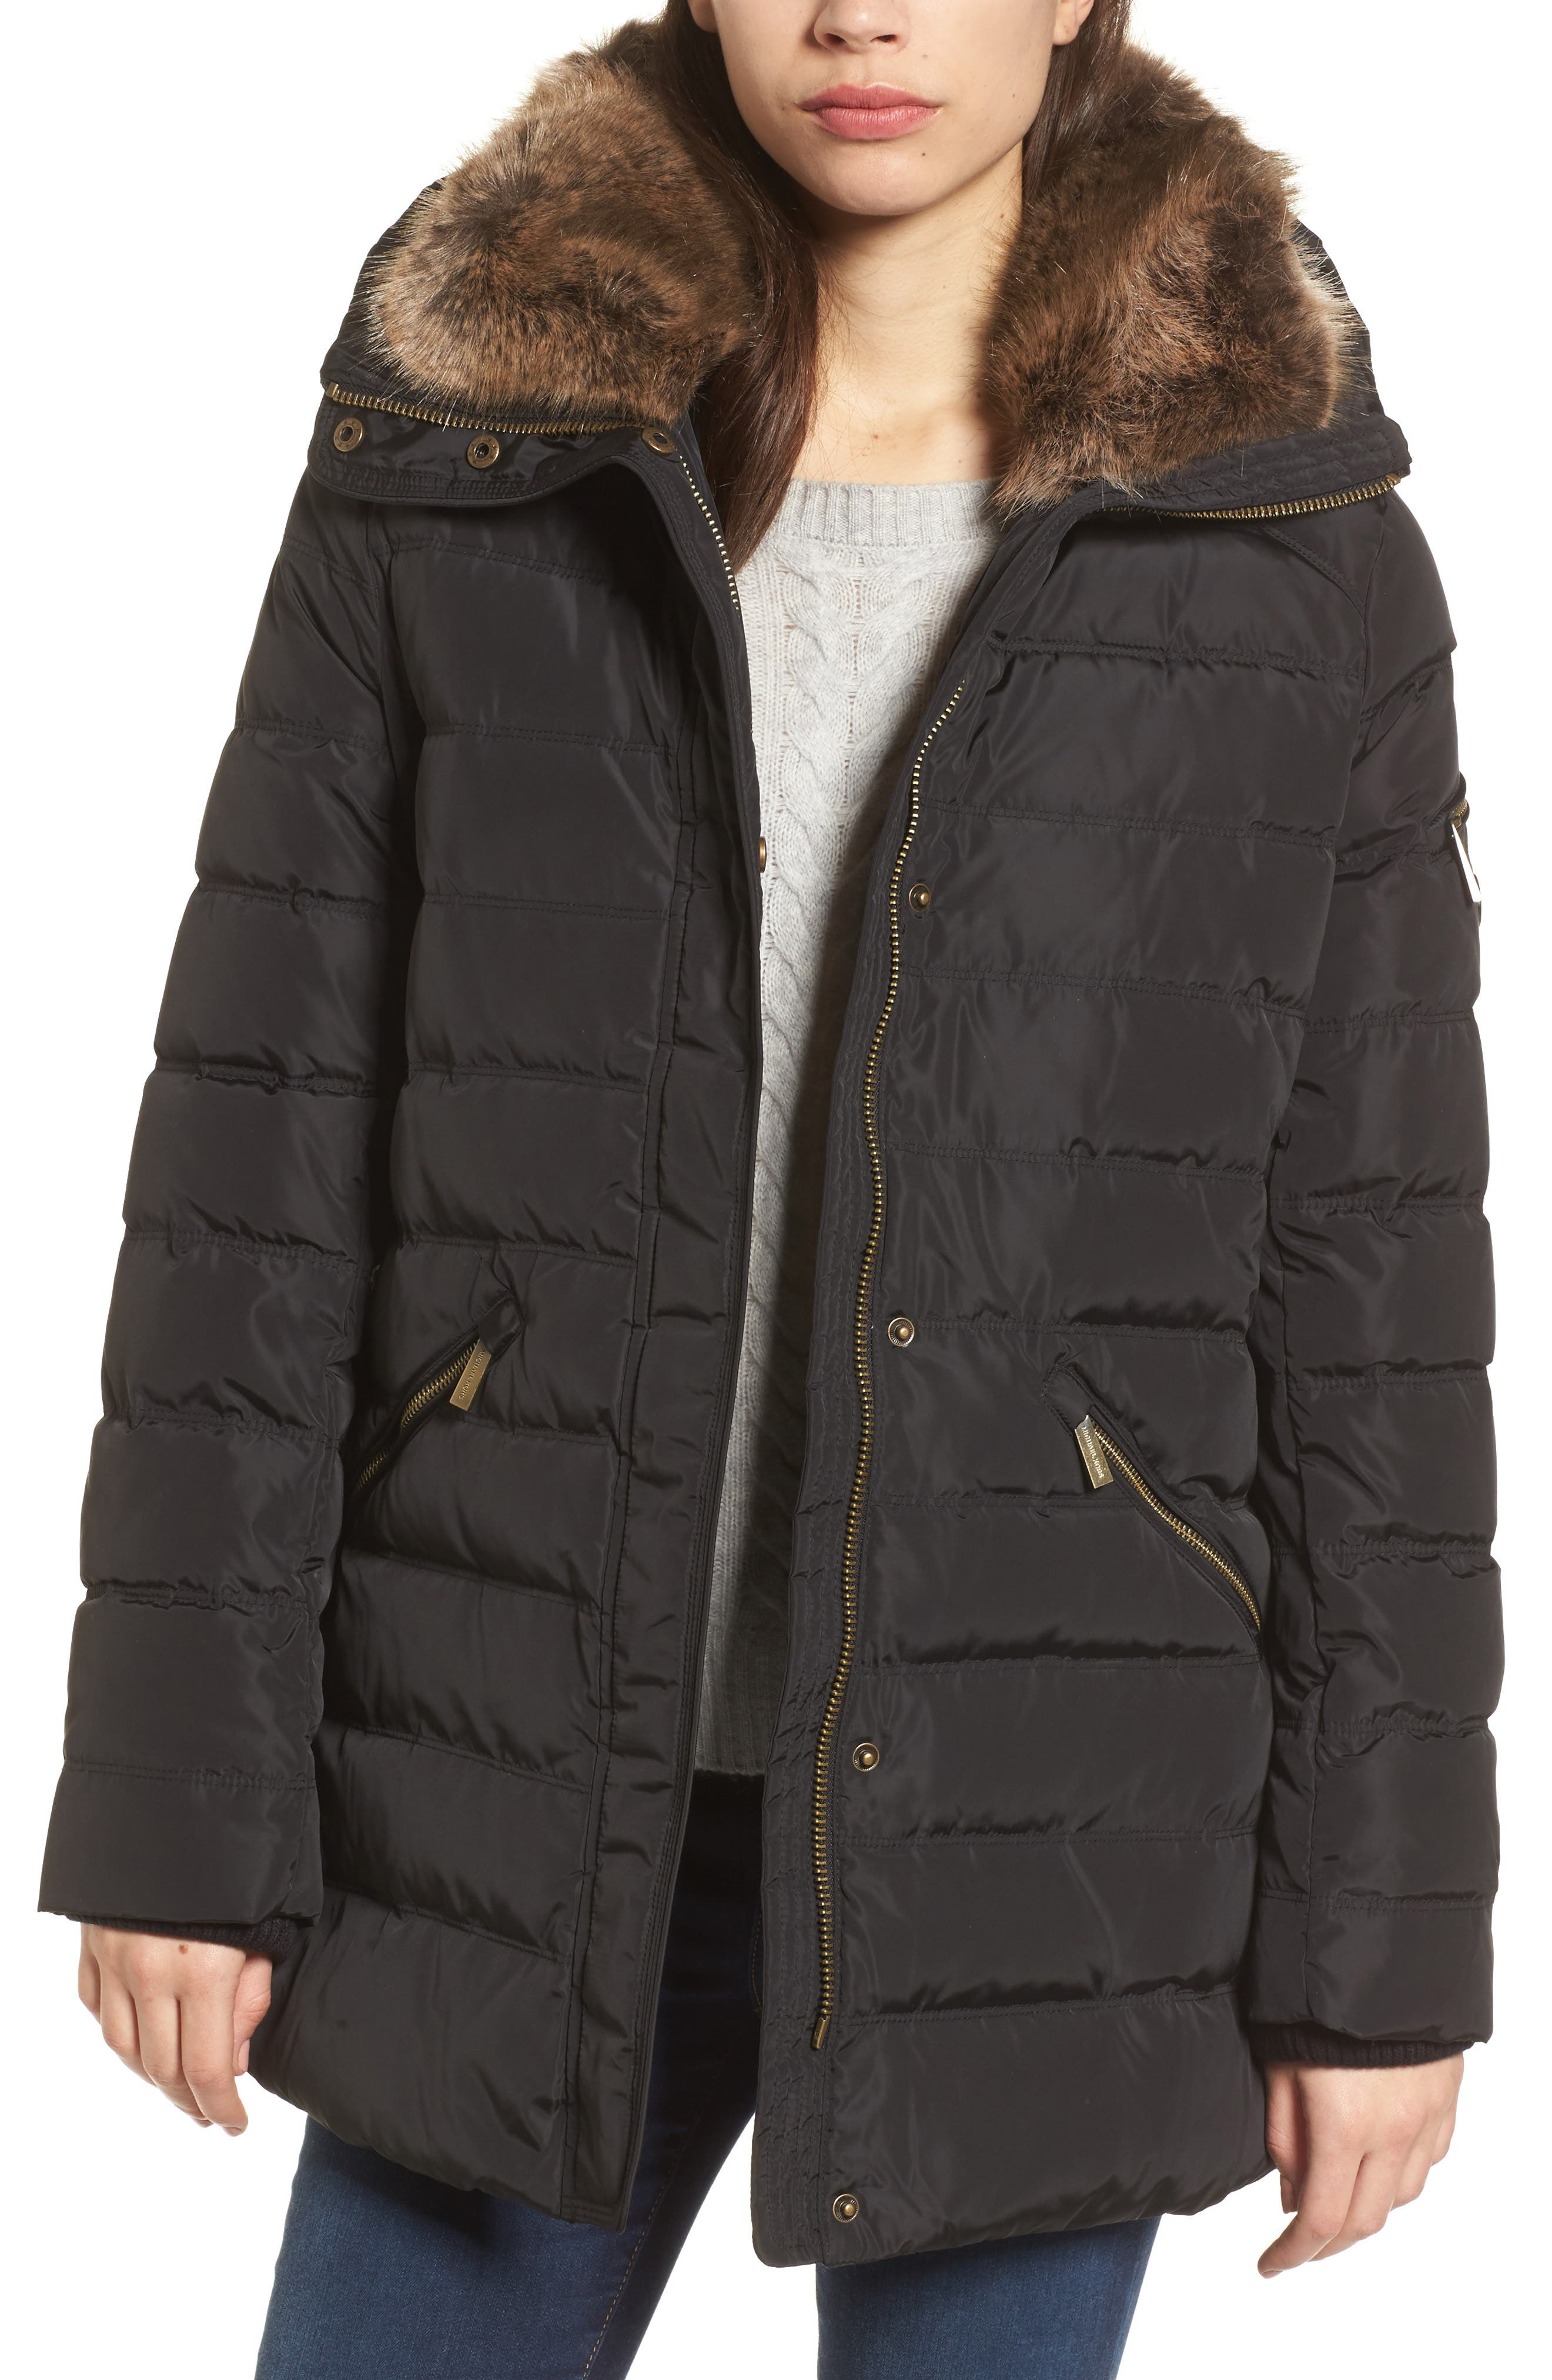 Hooded Coat with Faux Fur Trim,                             Main thumbnail 1, color,                             001